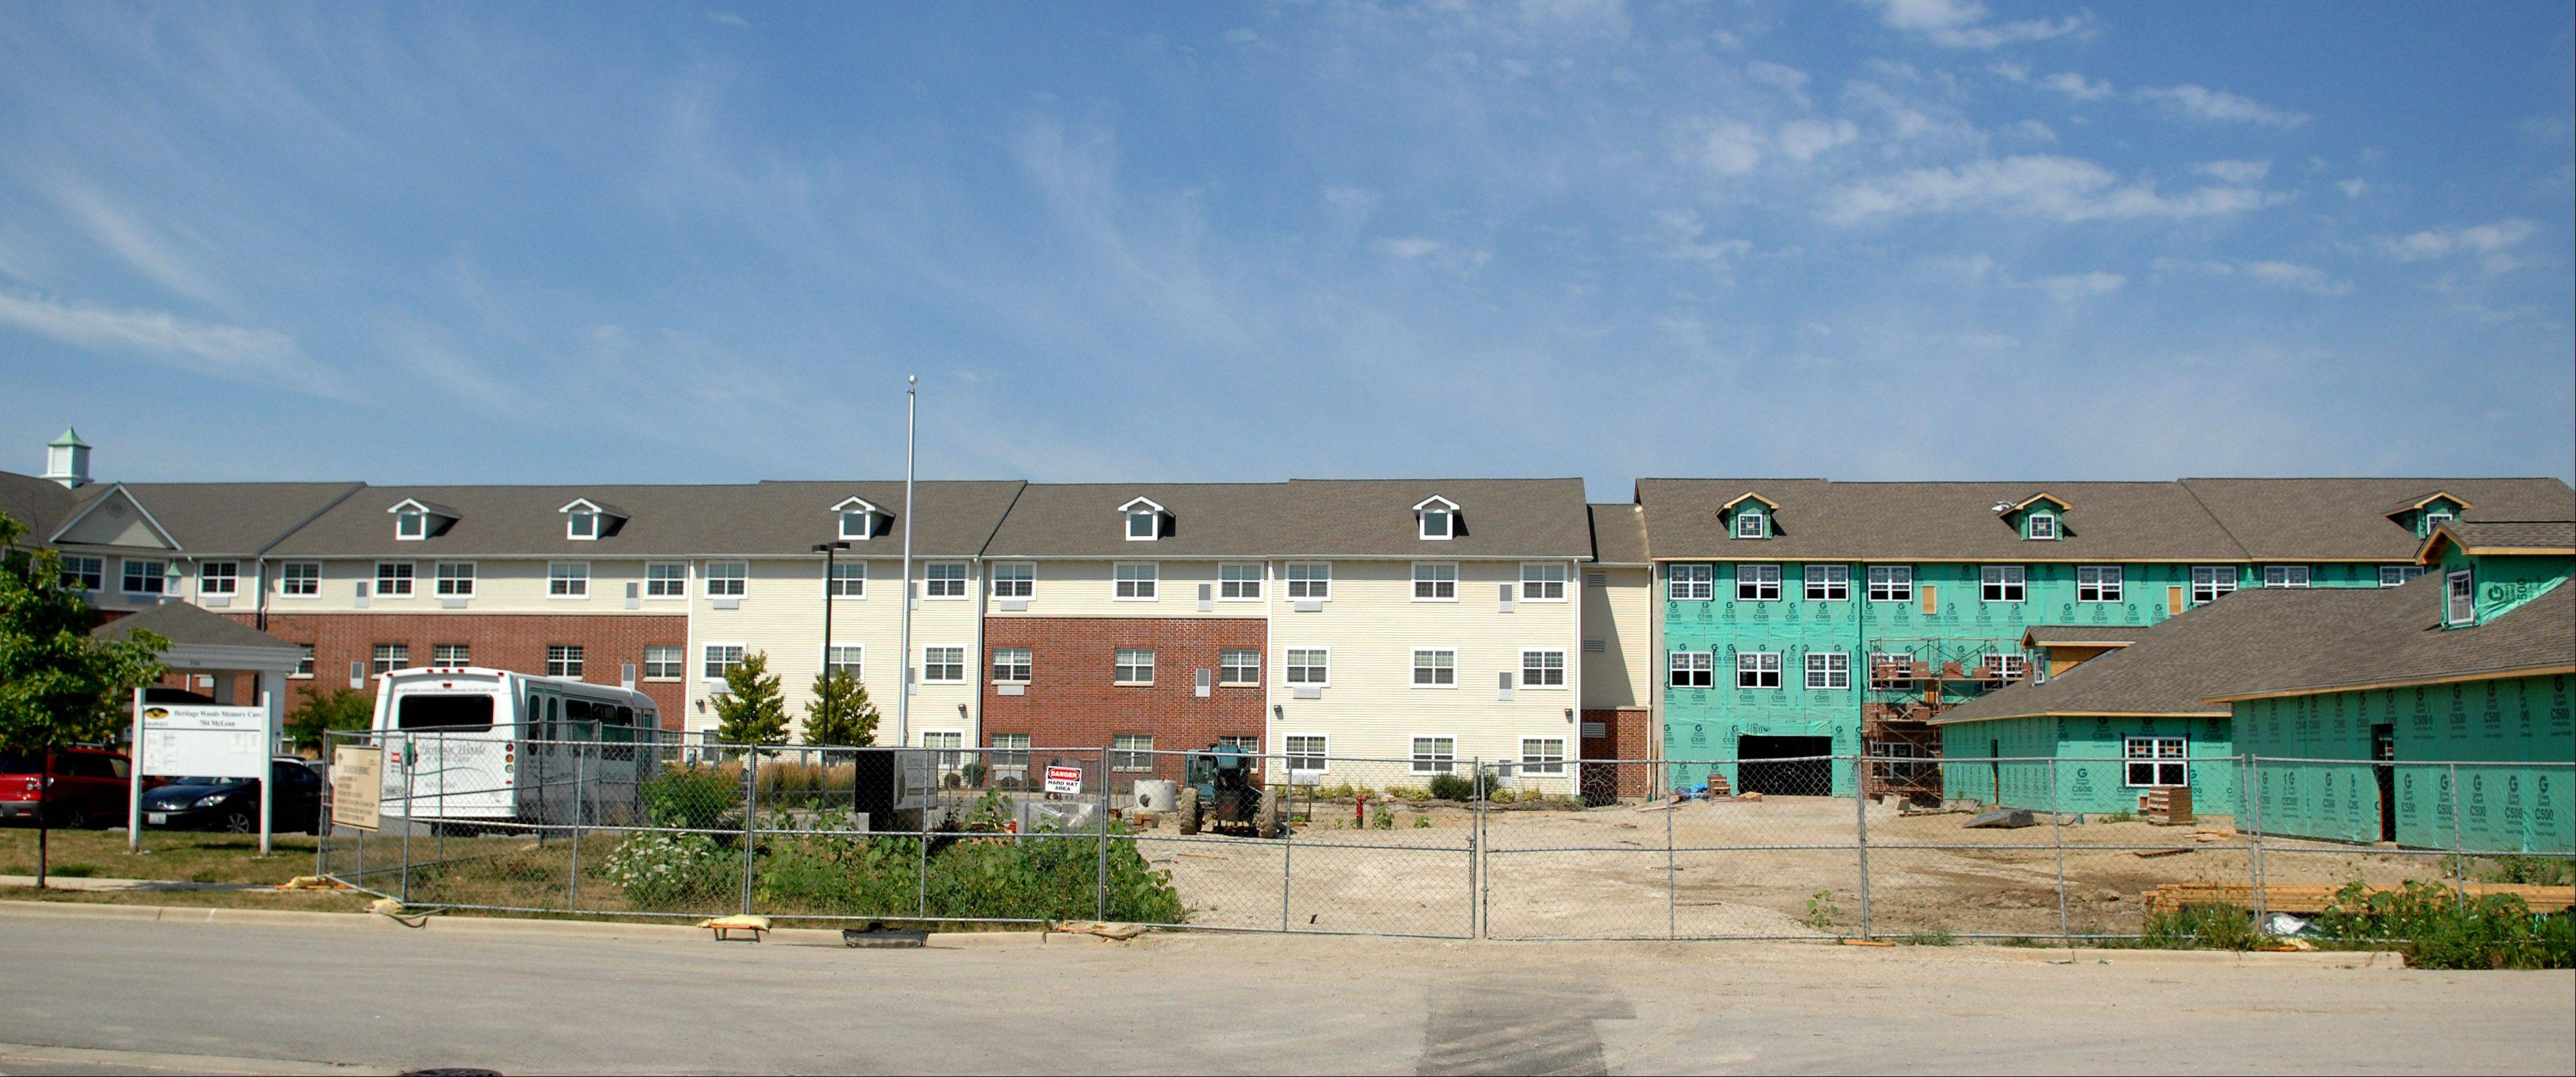 The Illinois Department of Healthcare and Family Services chose Heritage Woods of South Elgin as one of five locations for an affordable memory care pilot project in its Supportive Living program. The 32 new affordable memory care apartments are under construction, along with 18 new assisted living units. All are expected to be finished by the end of October.